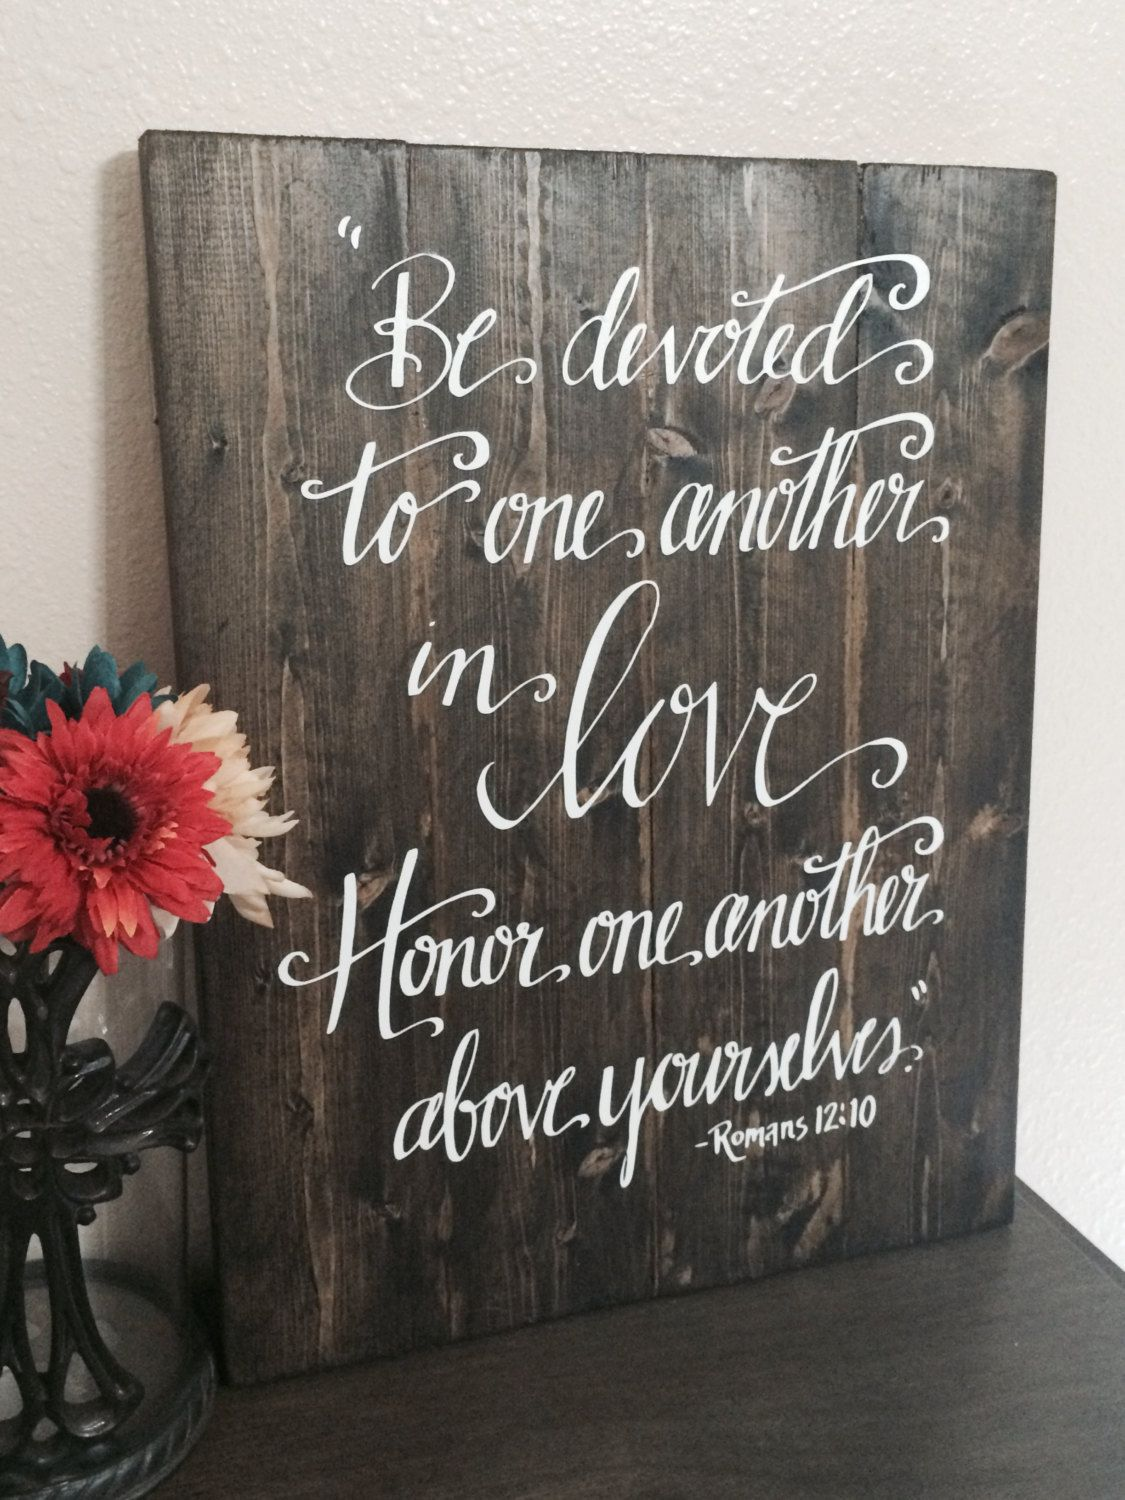 Wall Decor With Bible Verses : Wedding sign bible verse be devoted to one another